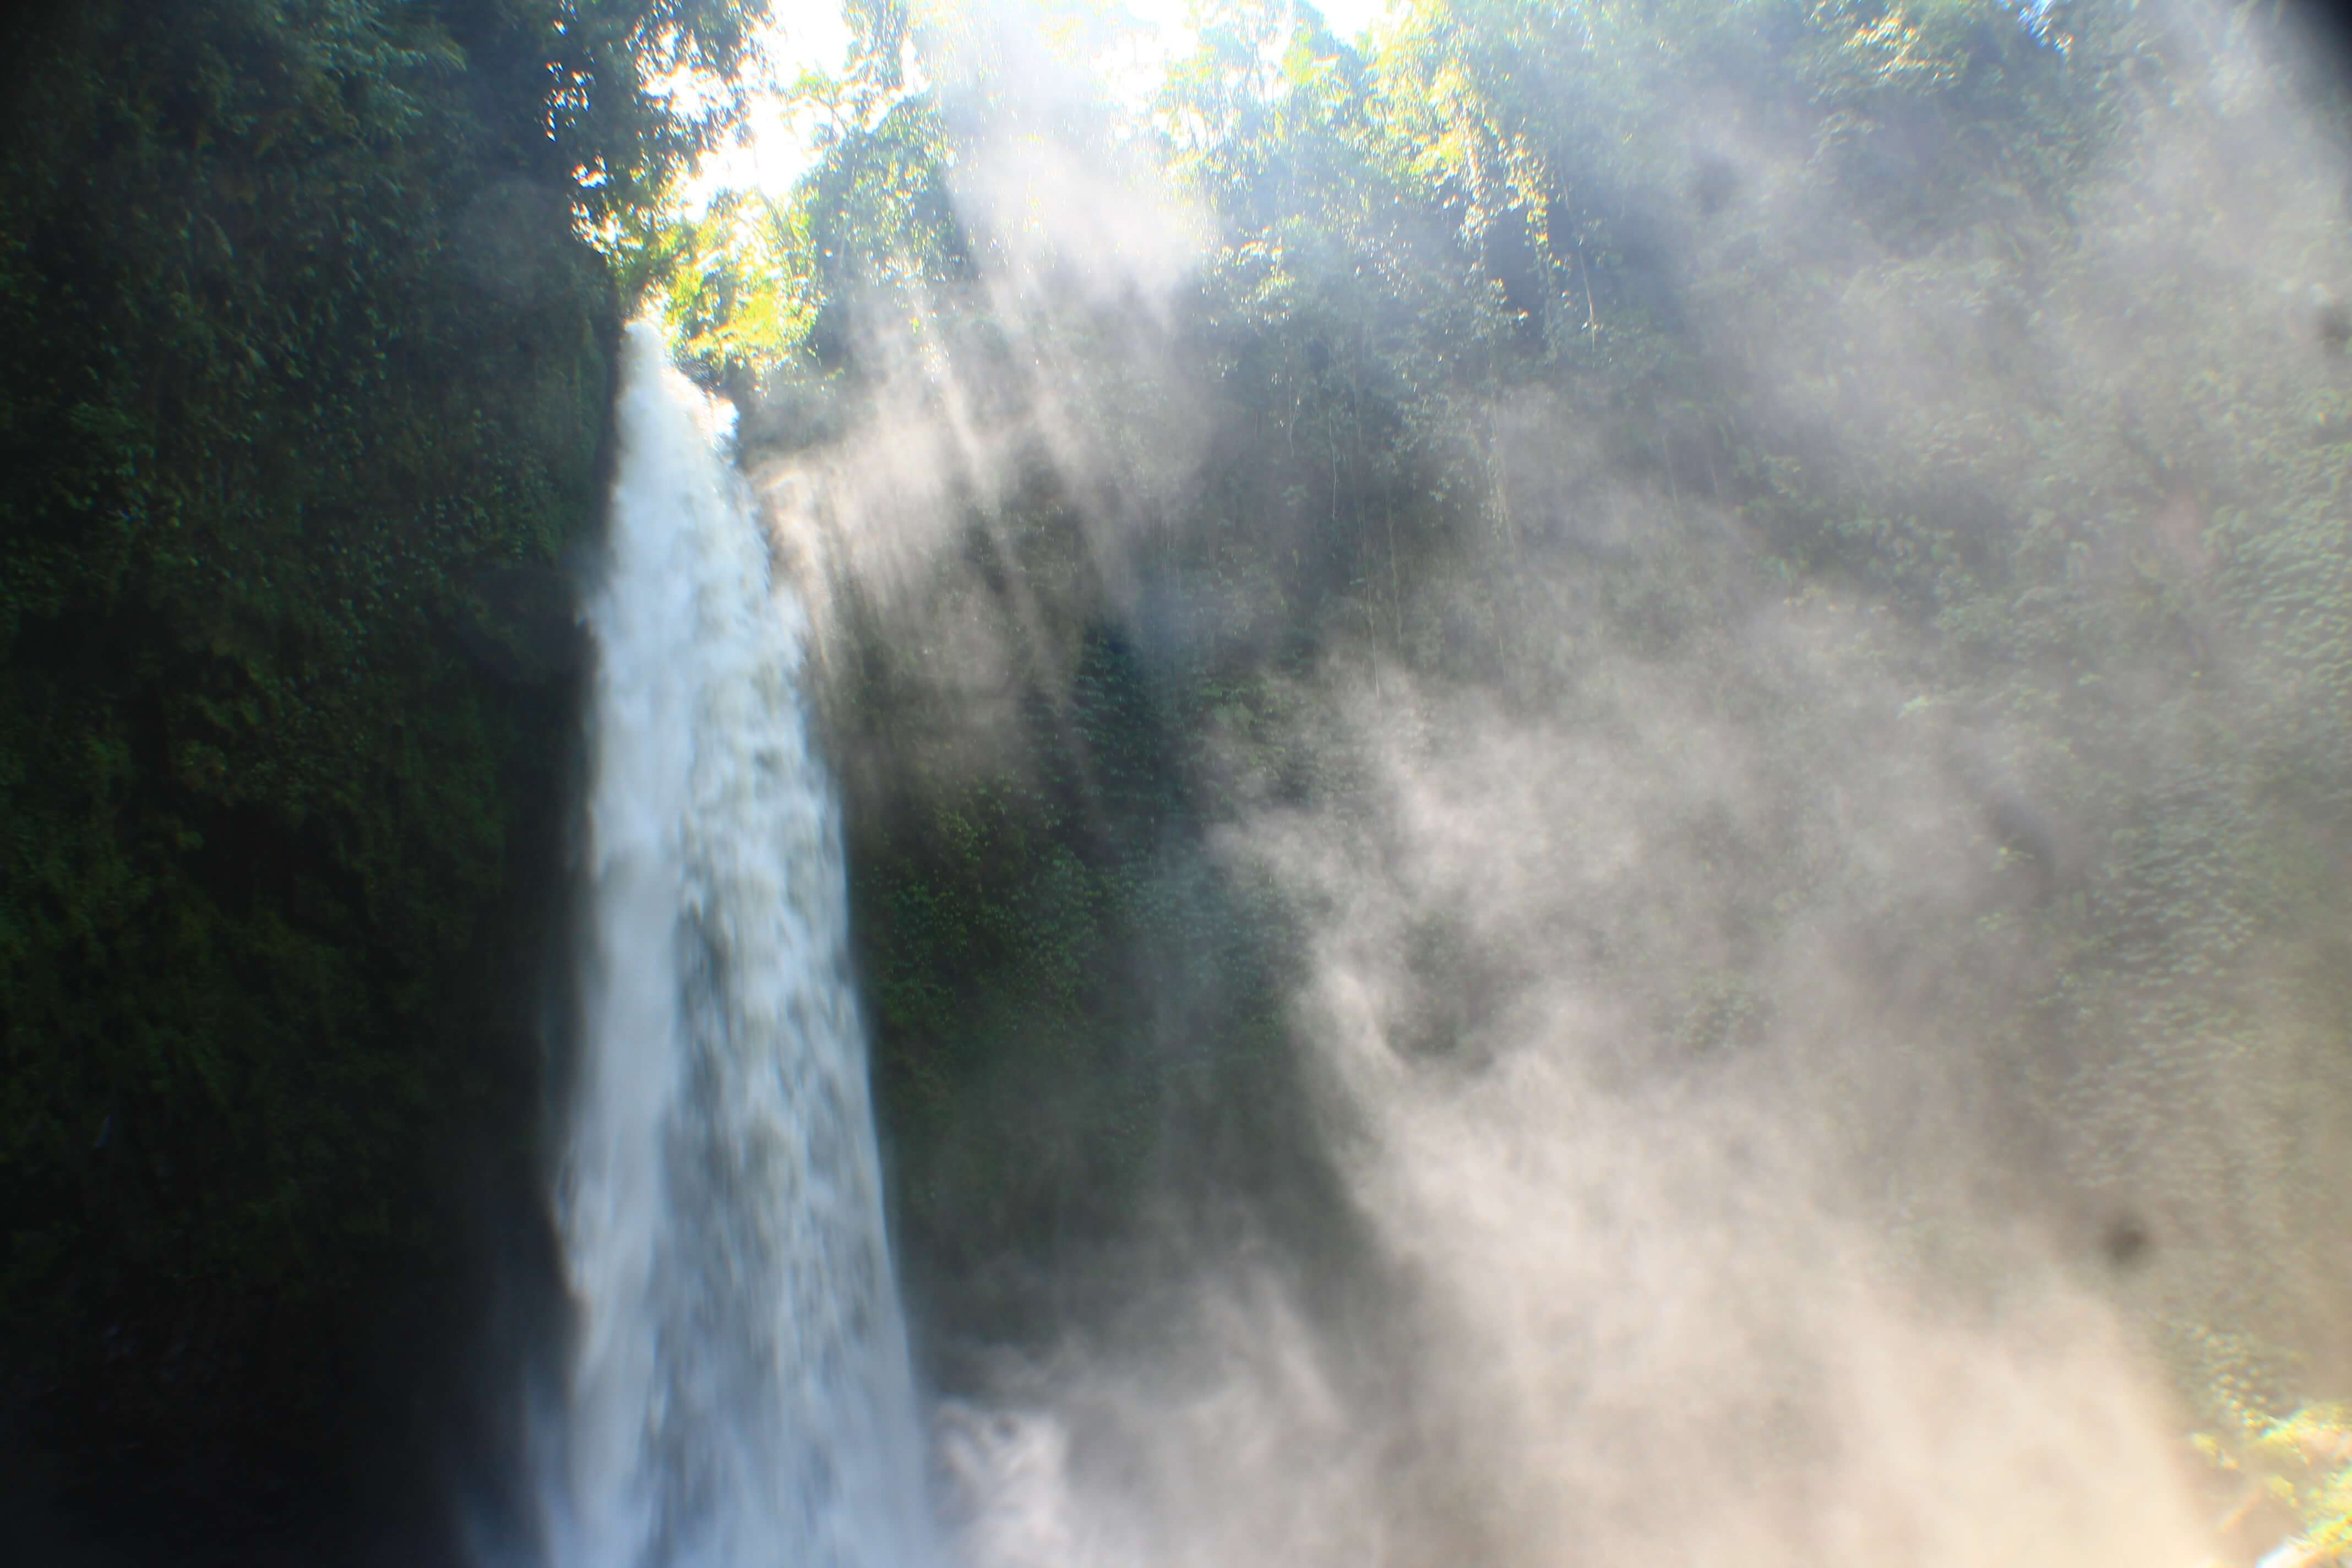 Nungnung, Bali waterfalls: epic 2 day itinerary